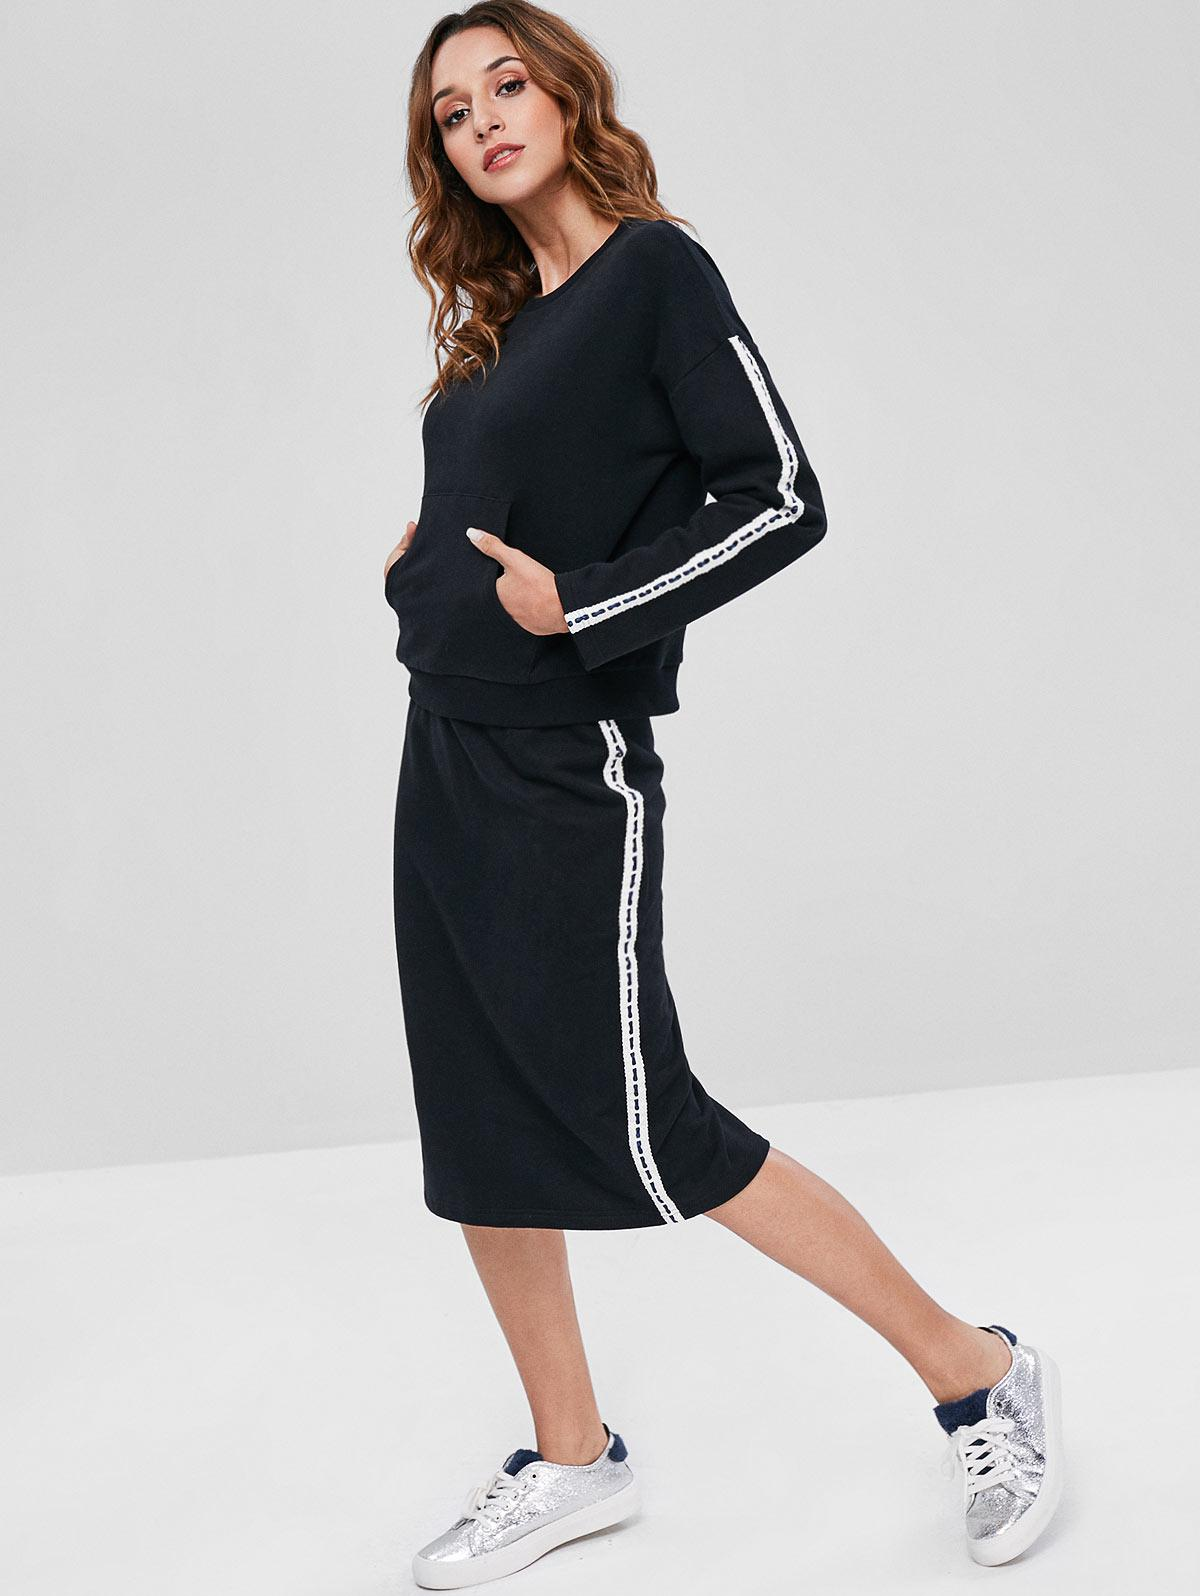 ZAFUL Contrast Side Sweatshirt and Pencil Skirt Set